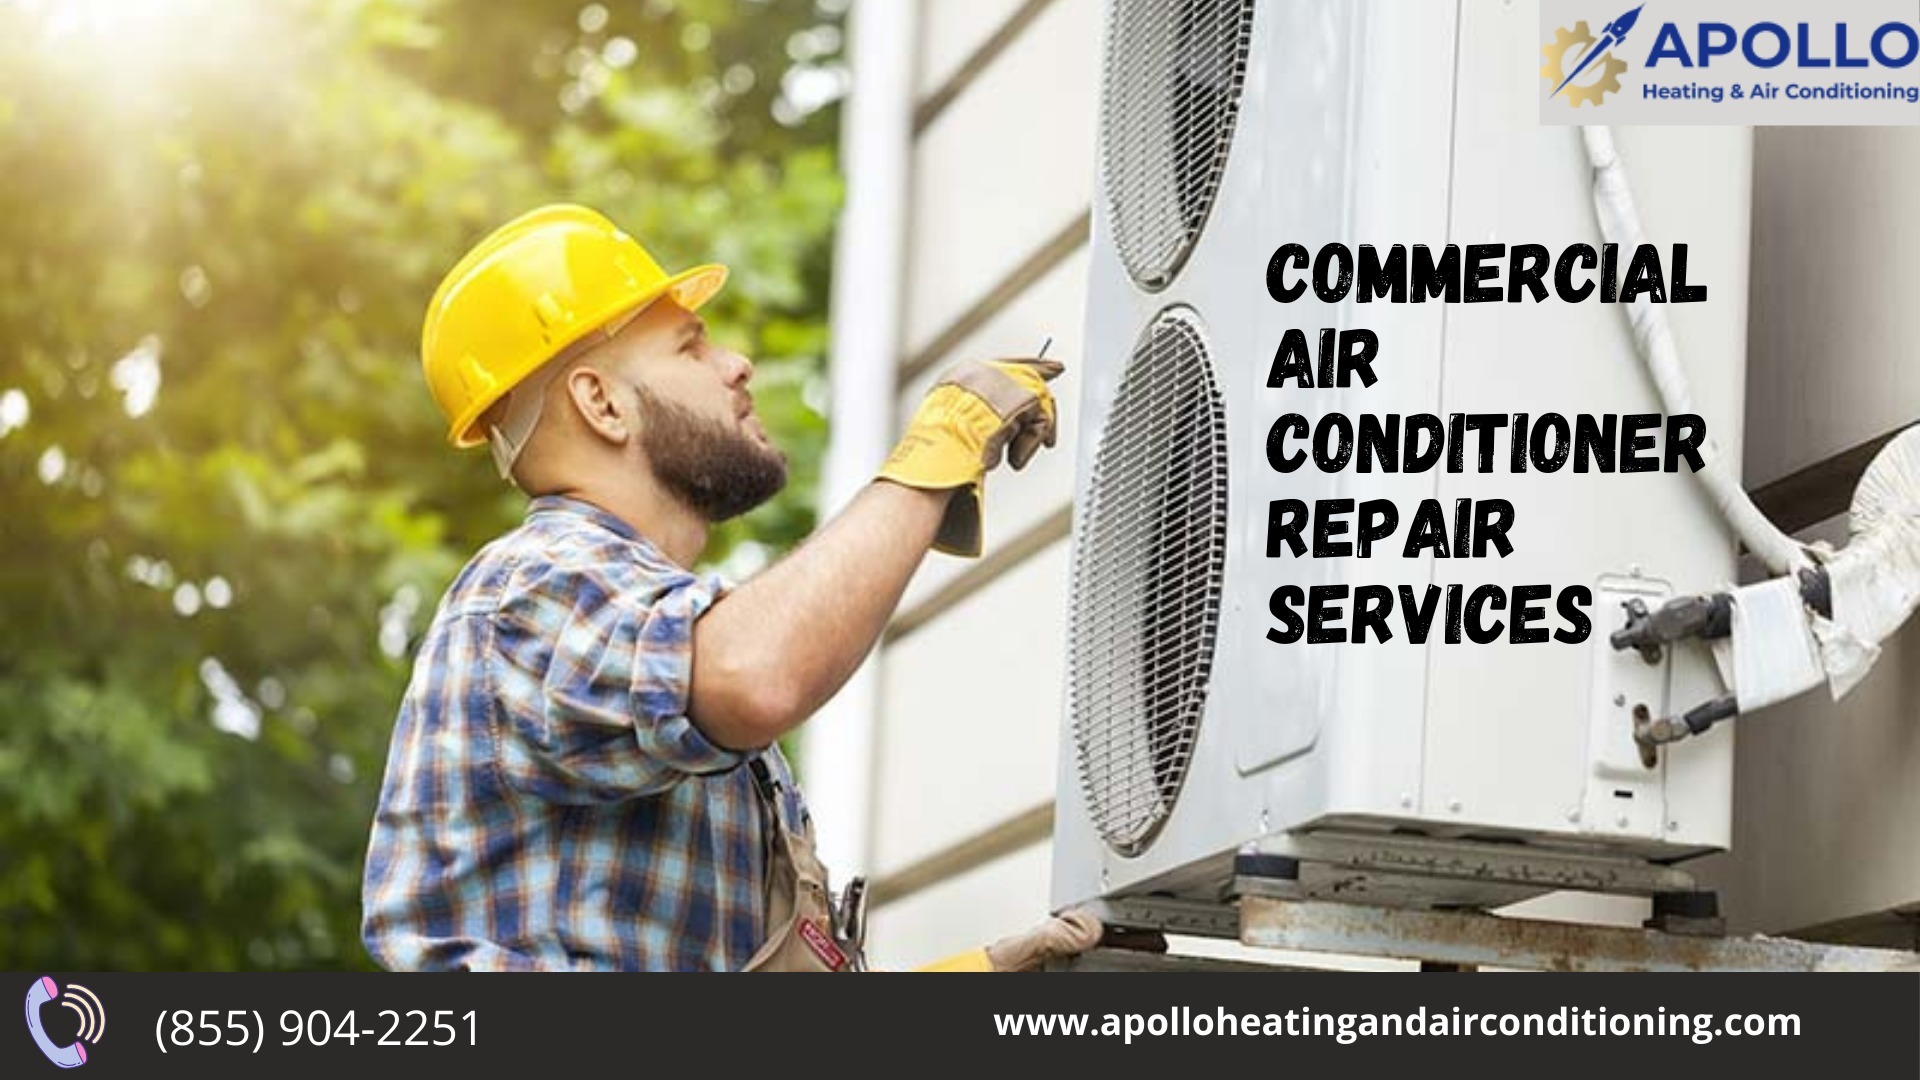 Apollo Heating and Air Conditioning (@apolloheatingairconditioning) Cover Image